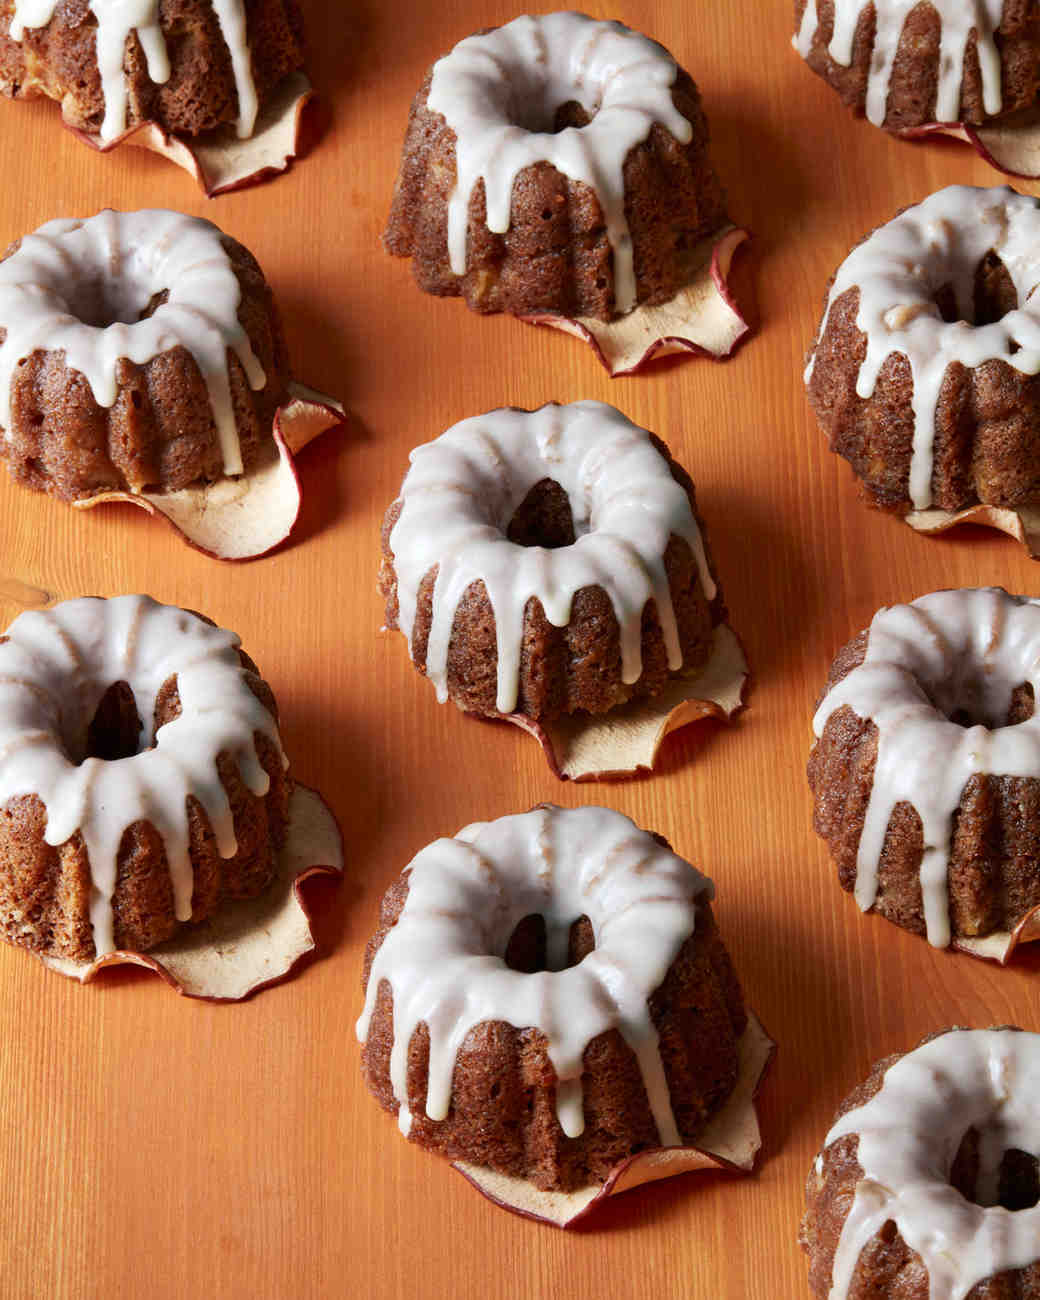 fall-dessert-apple-bundt-cakes-4299-hero-d113106.jpg